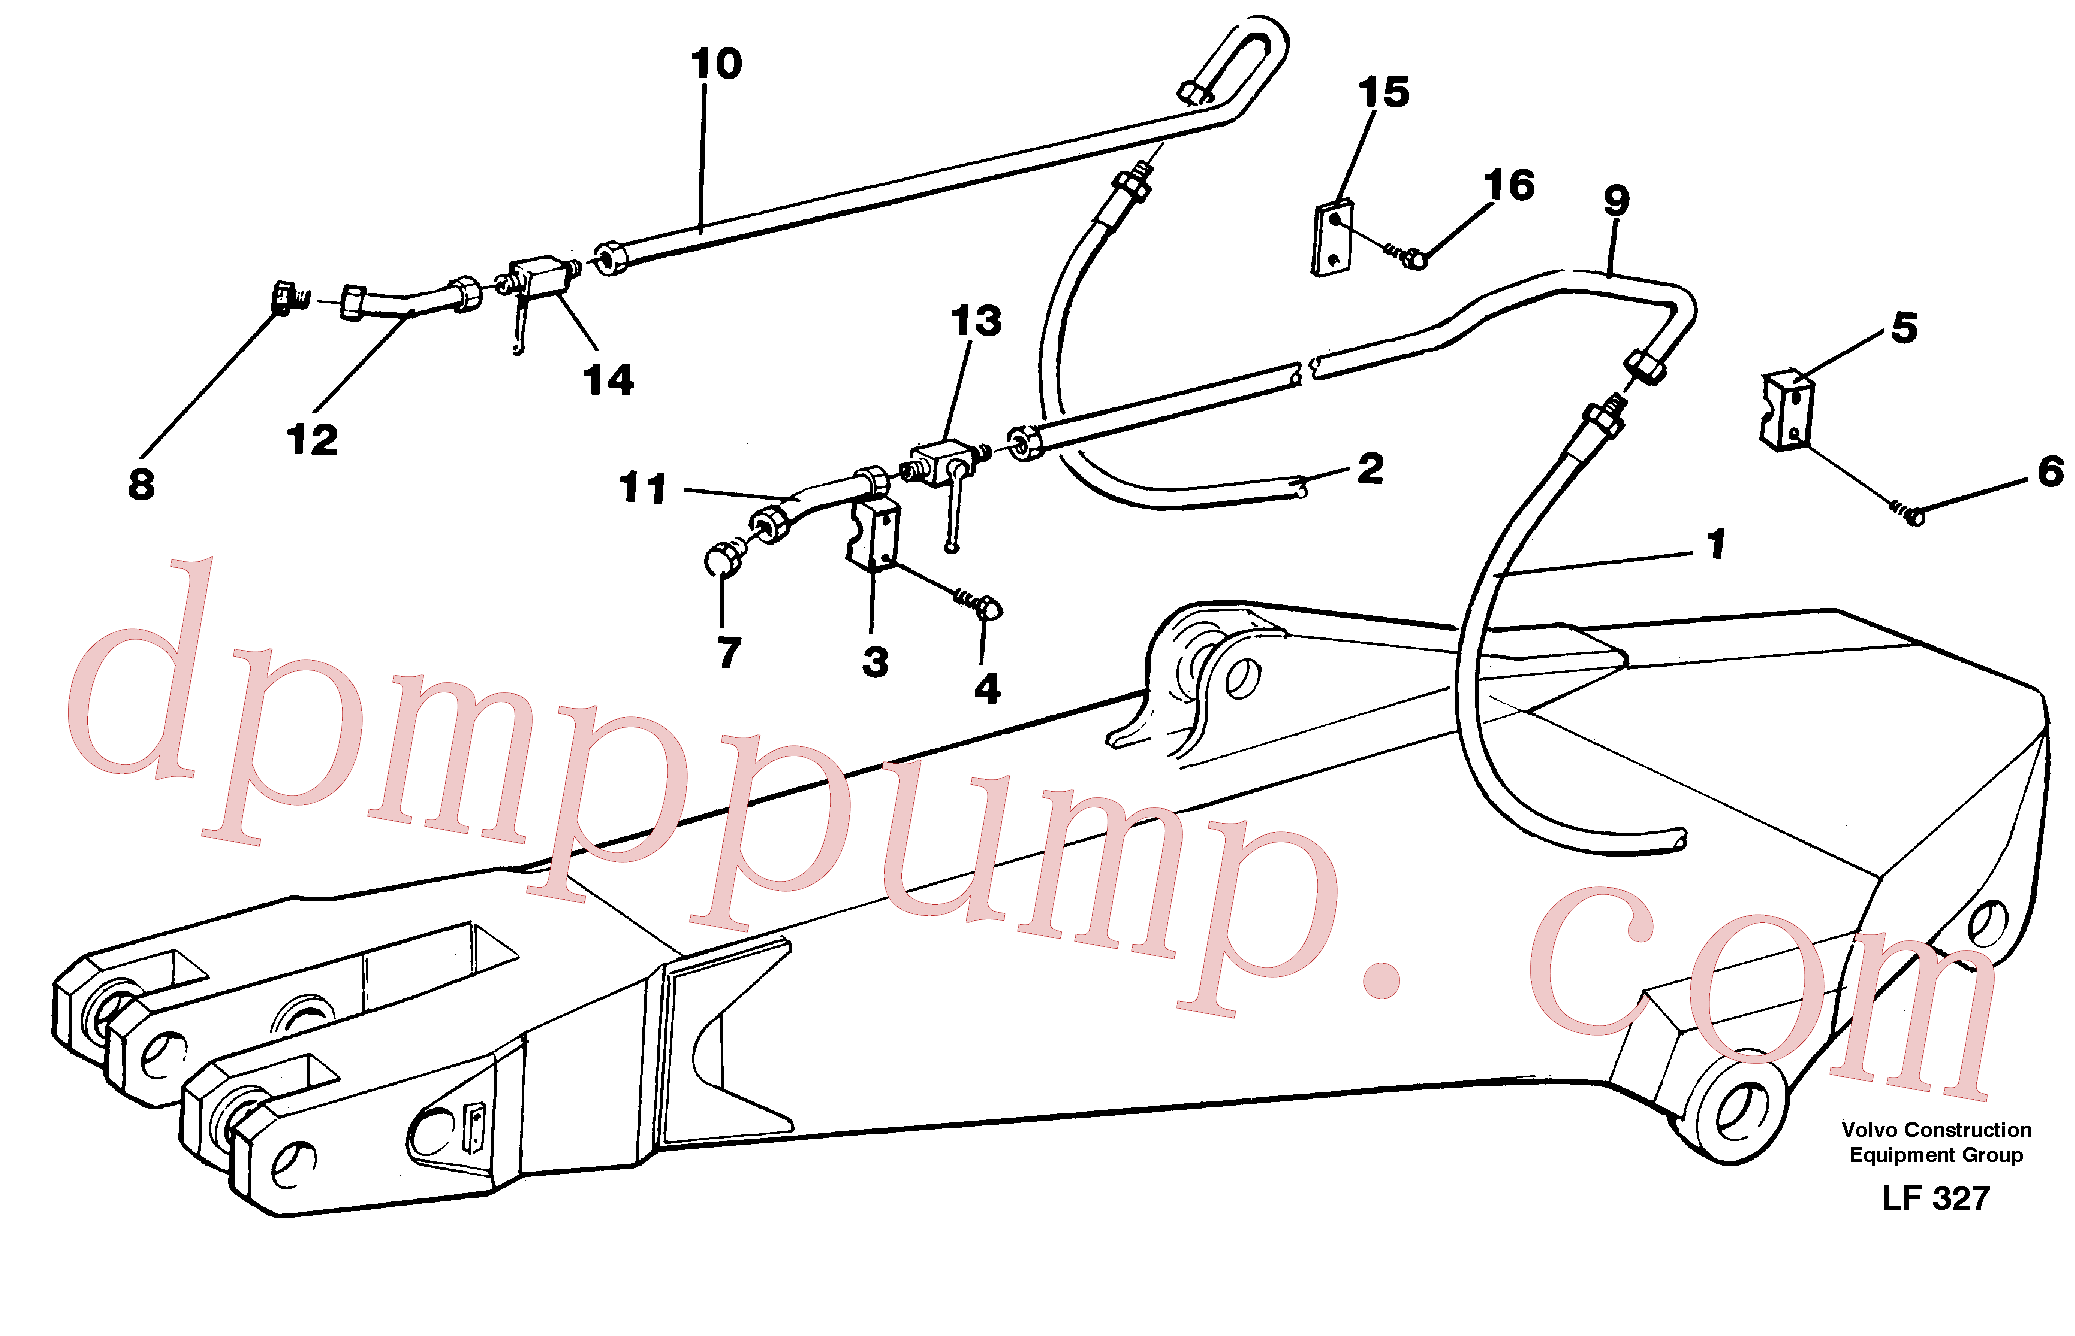 VOE14210940 for Volvo Hammer hydraulics for dipper arm incl. shut-offcocks.(LF327 assembly)